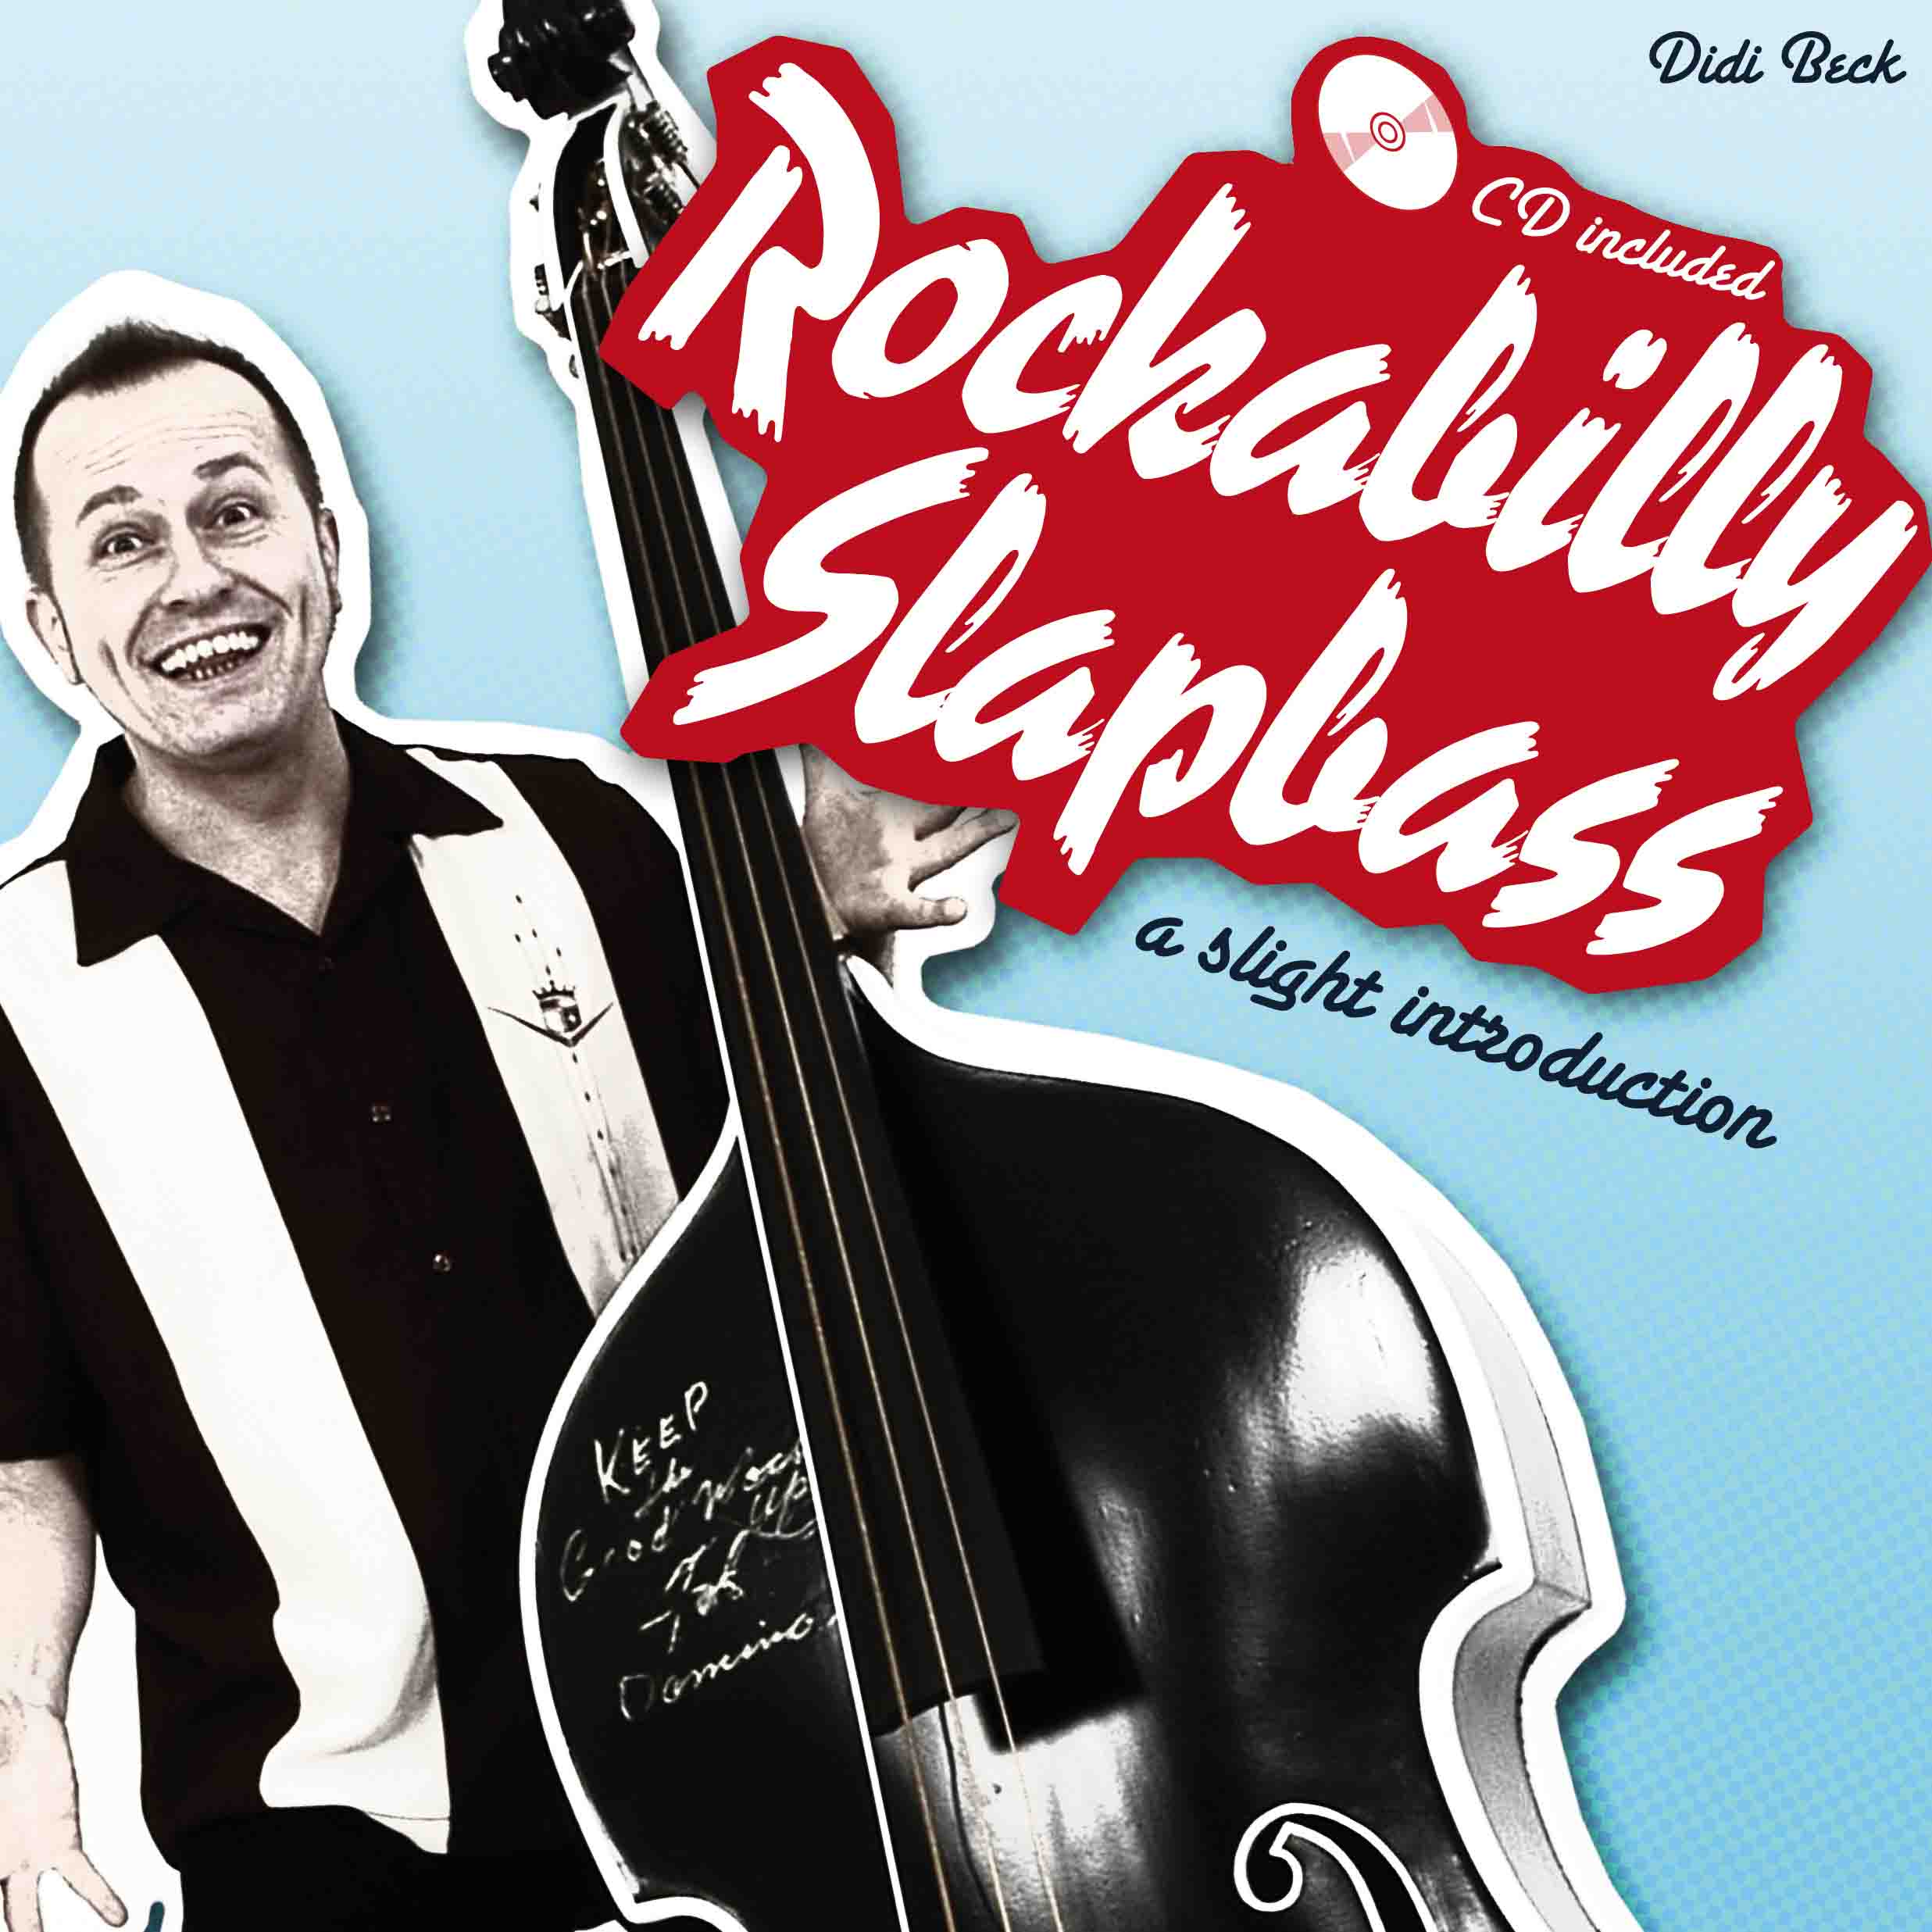 instructional rockabilly and psychobilly upright slap bass book